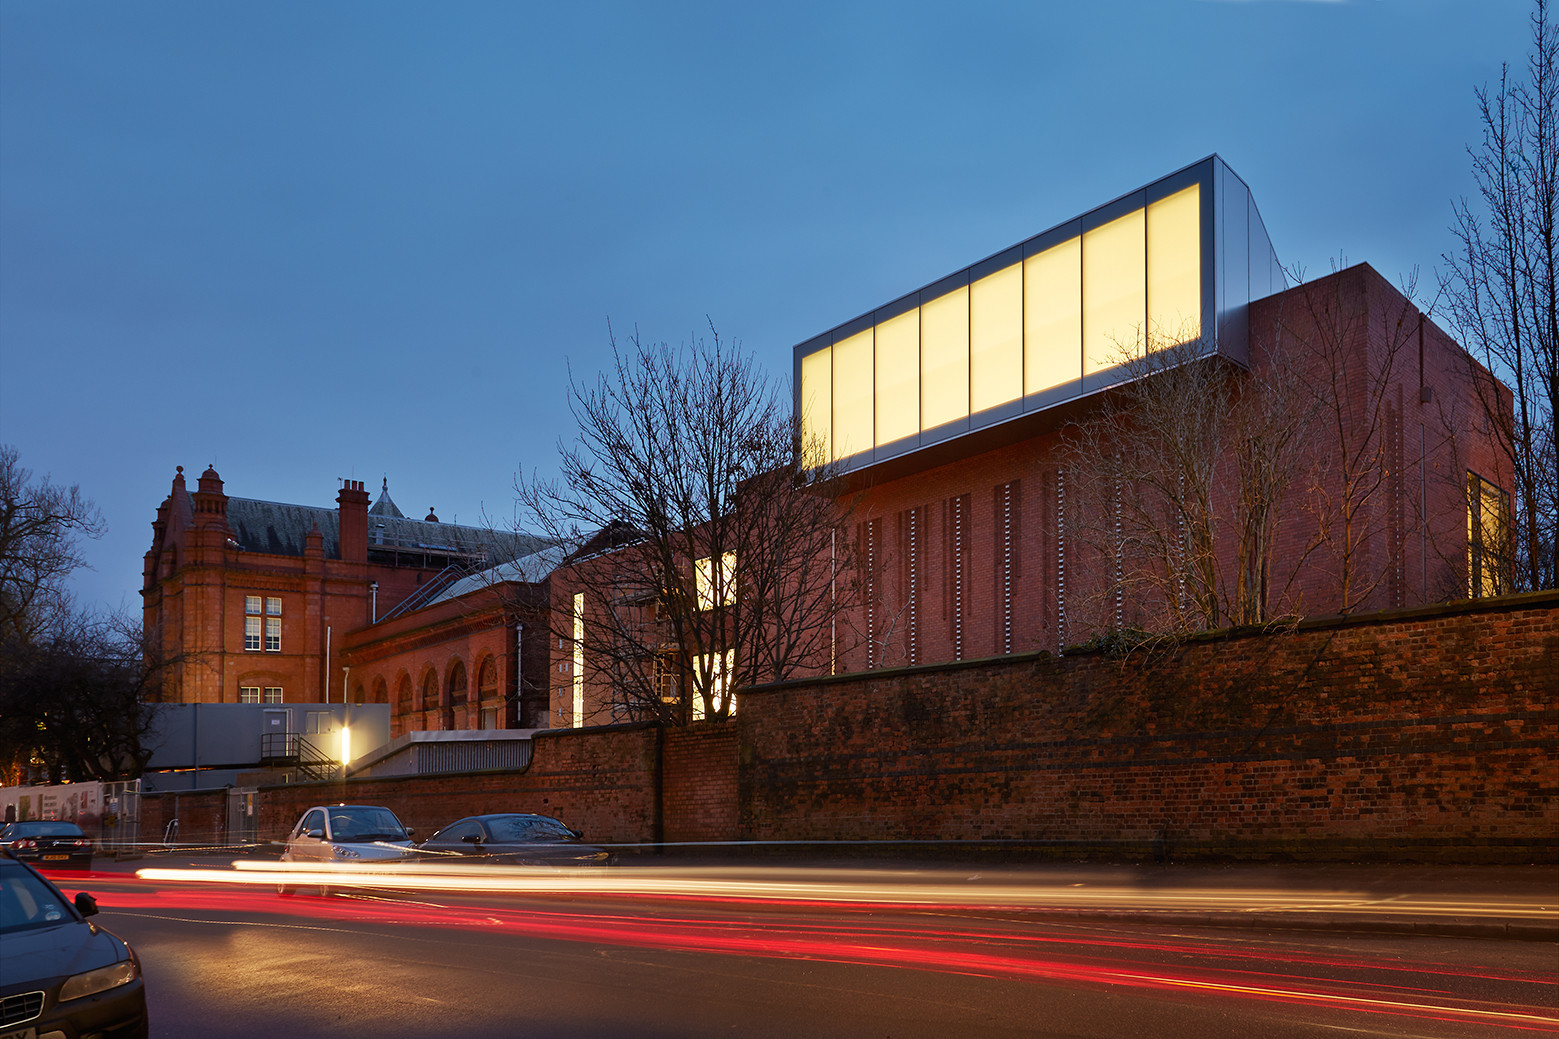 The Redevelopment Of The Whitworth / MUMA, Courtesy of MUMA